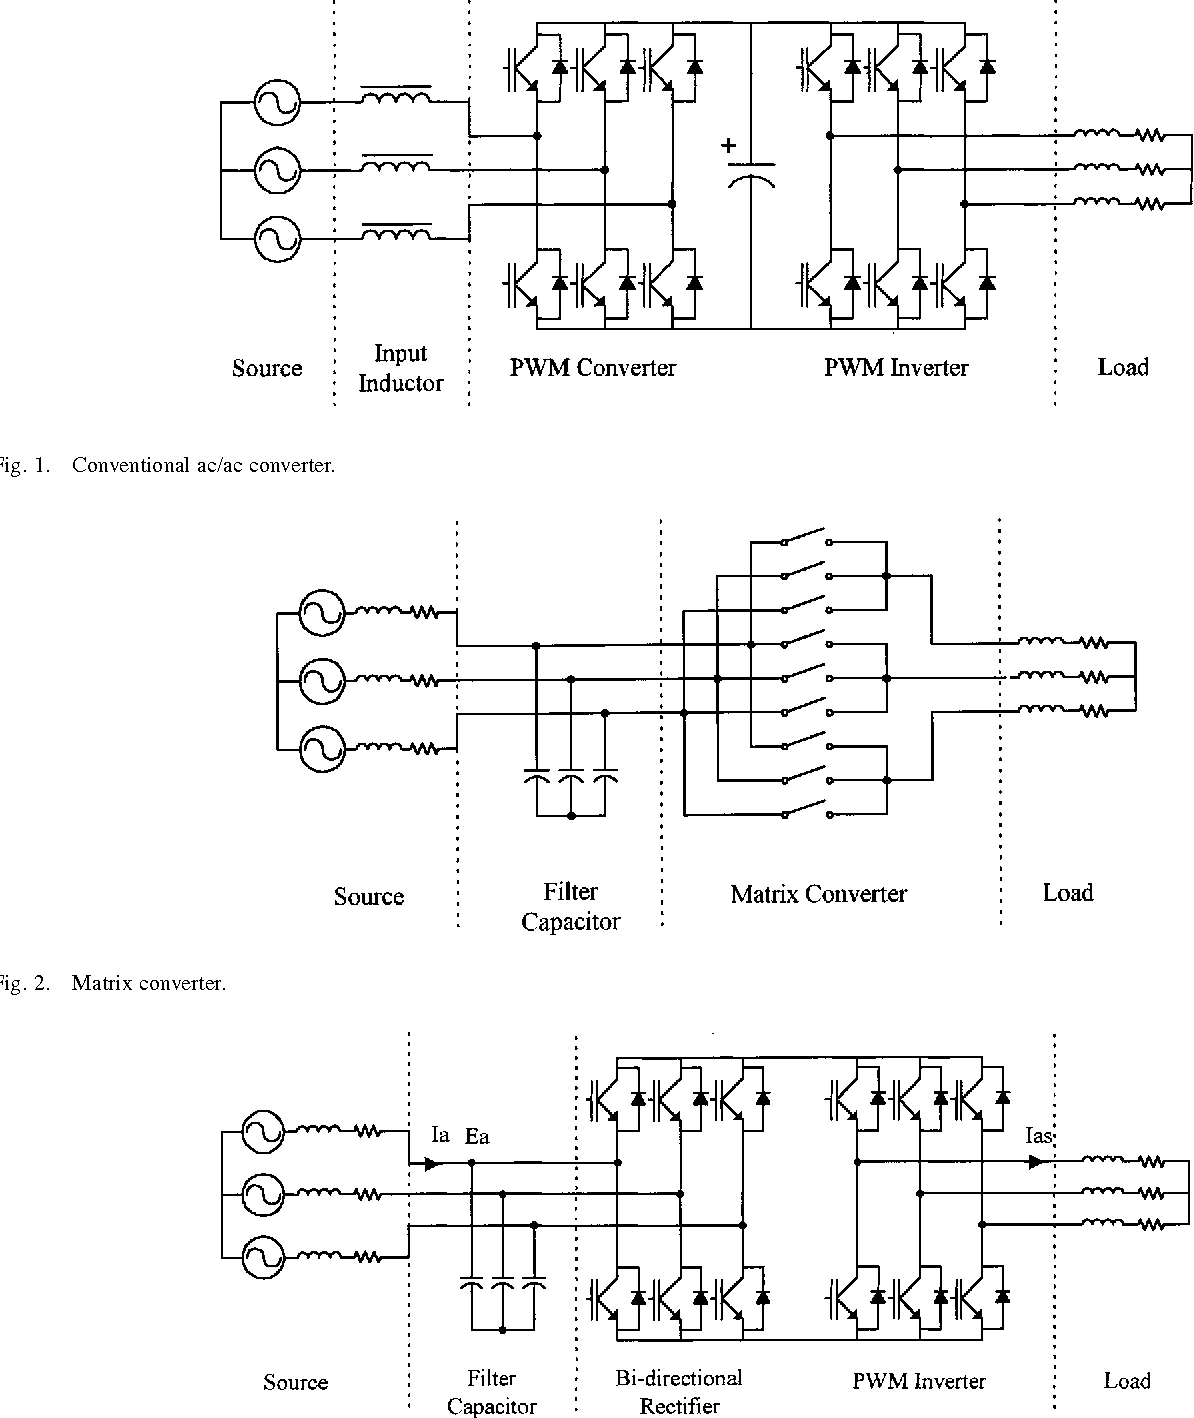 Ac Power Conversion Based On Matrix Converter Topology With Rectifier Capacitor Filter Public Circuit Online Unidirectional Switches Semantic Scholar